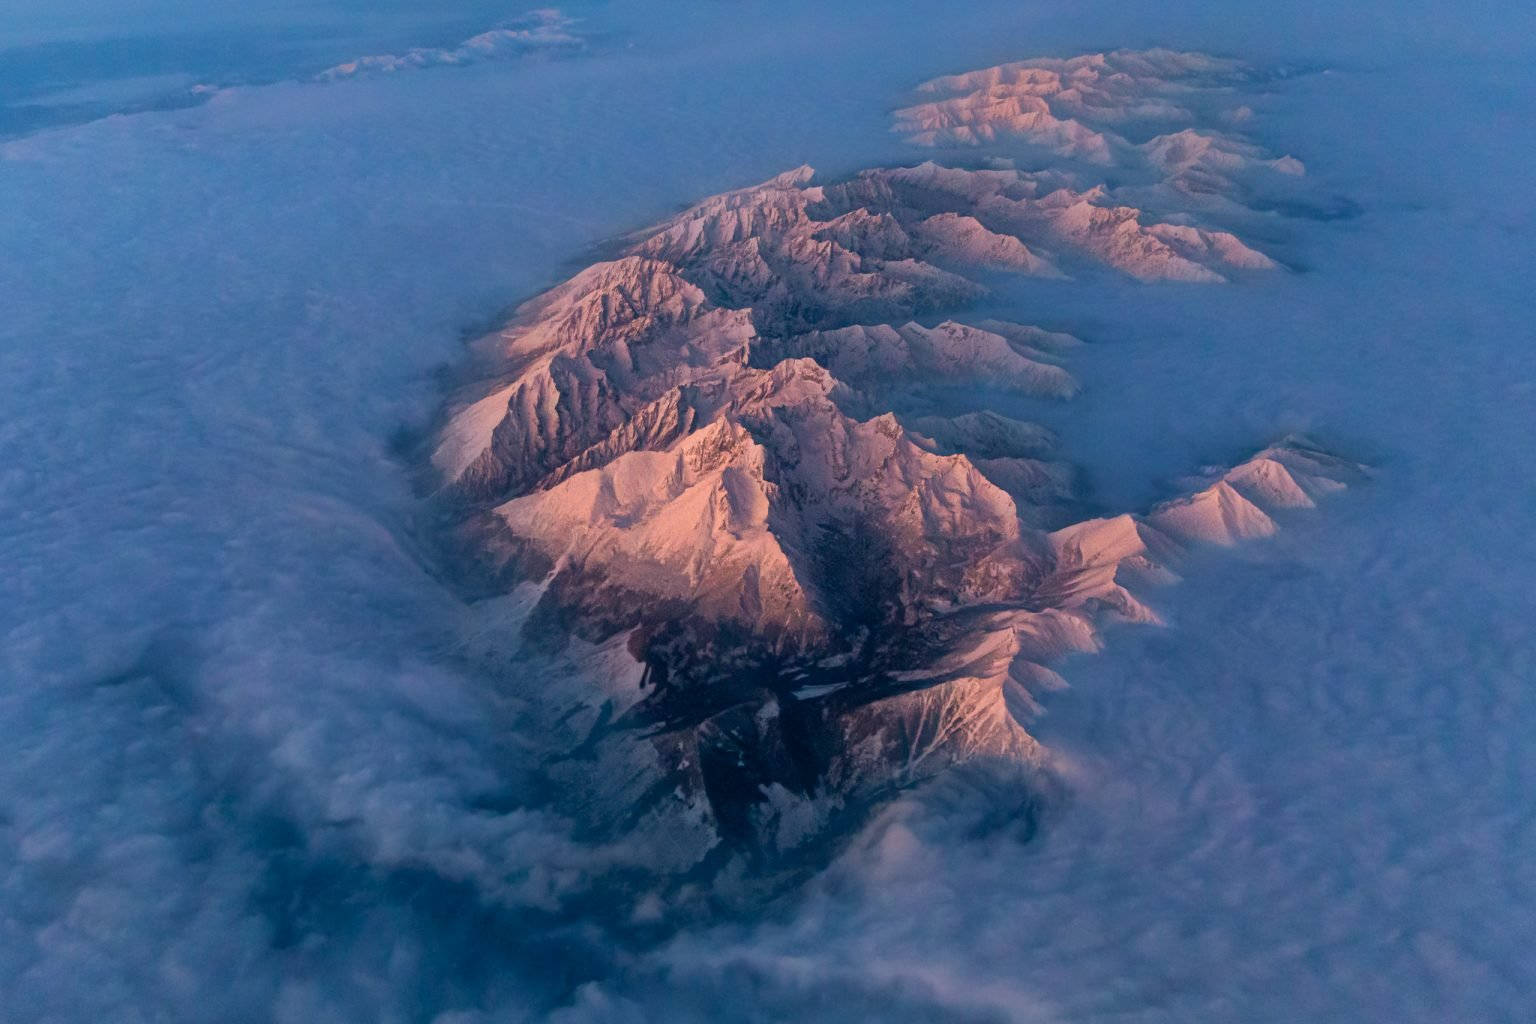 Tatry mountains in the clouds